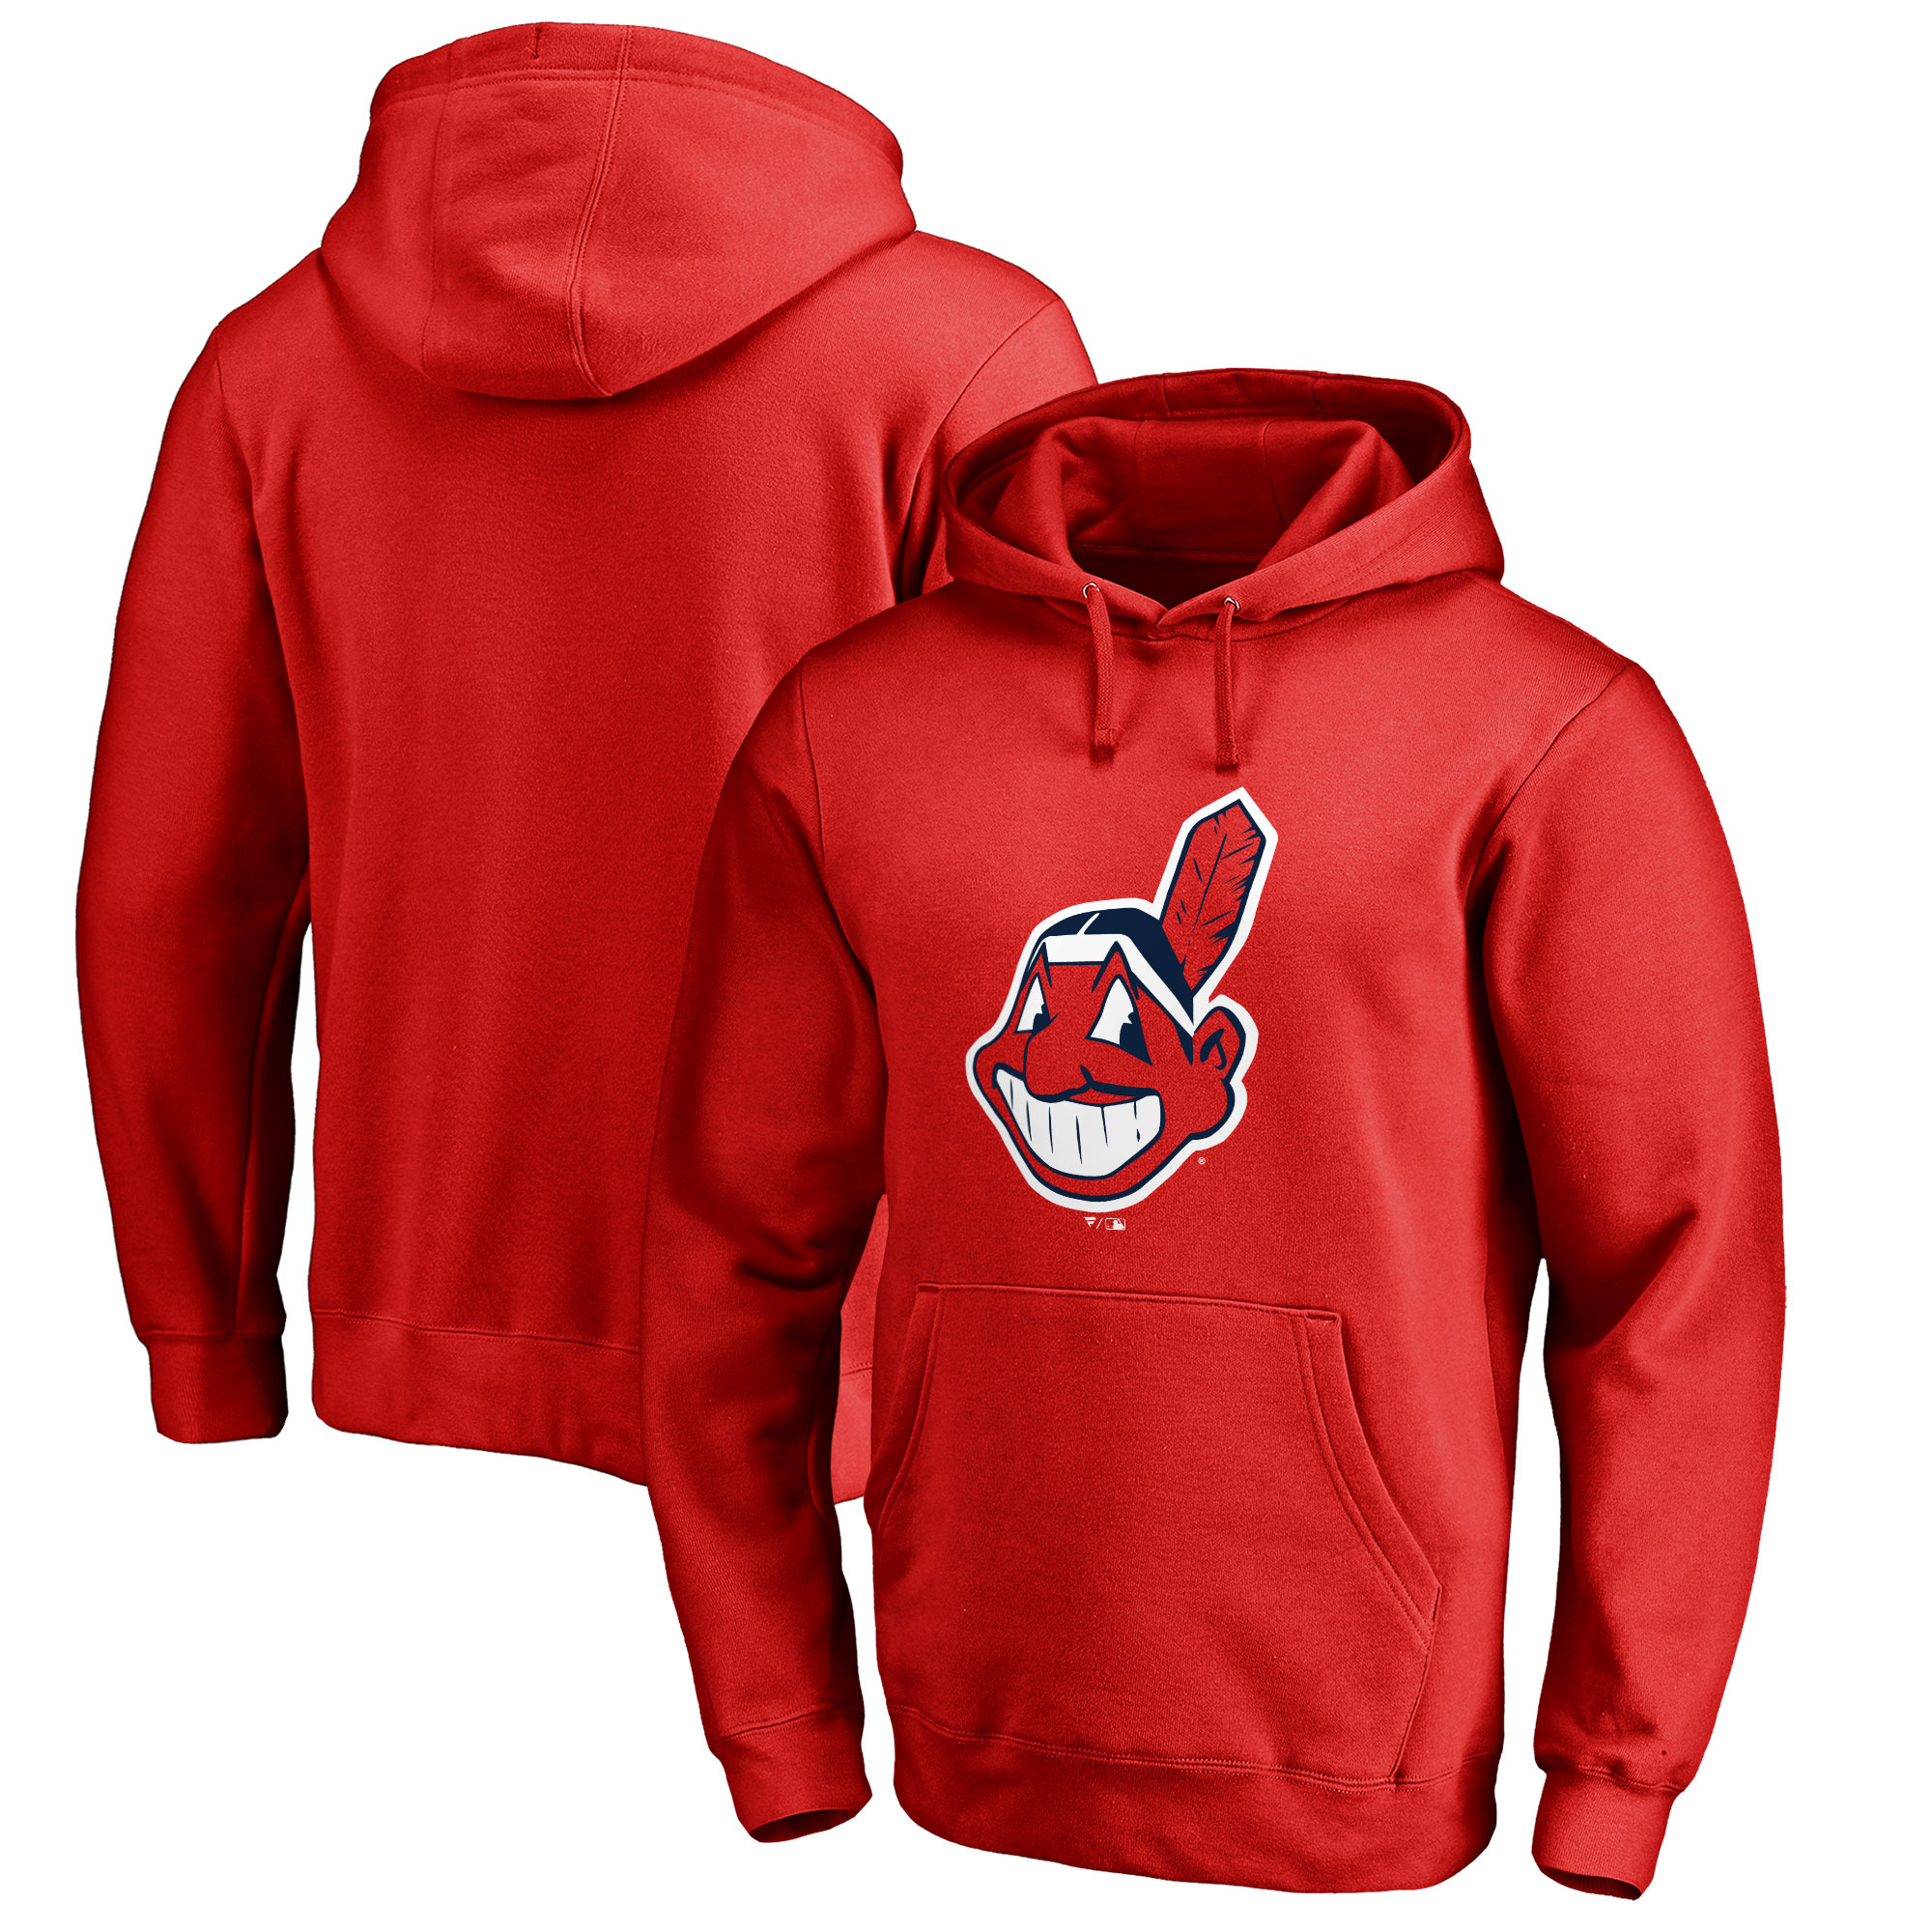 Men's Fanatics Branded Red Cleveland Indians Primary Logo Big & Tall Pullover Hoodie